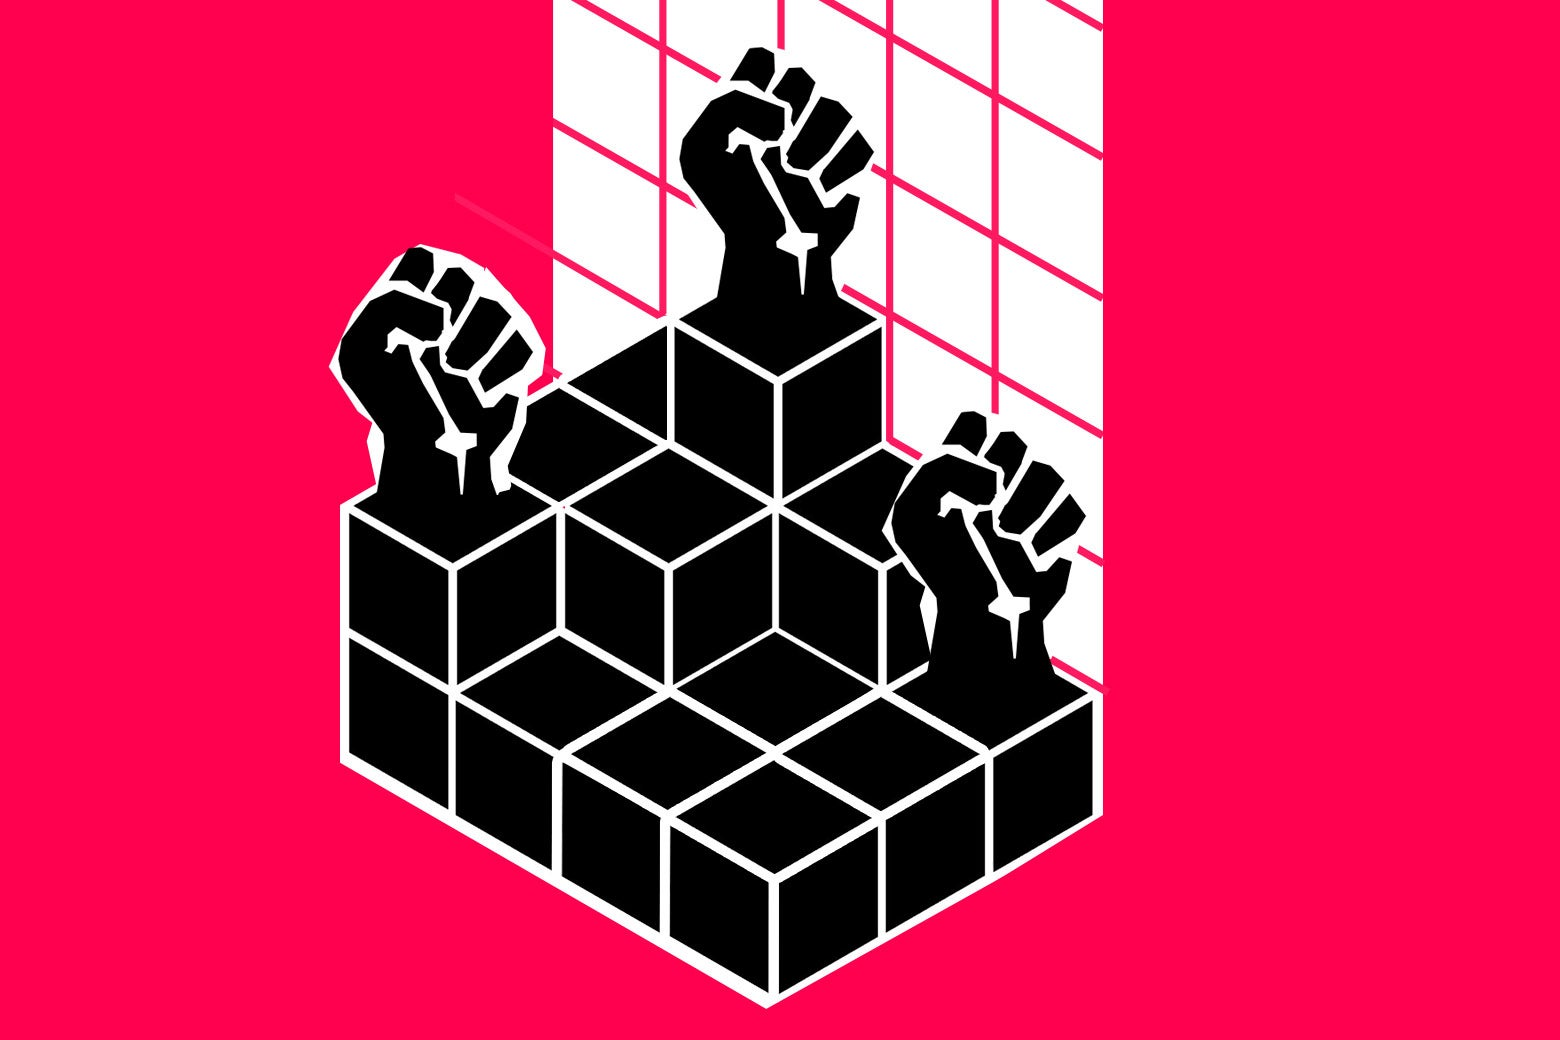 Illustration by Slate.  Illustration of fists raised in solidarity atop a graph of data to combat racism.